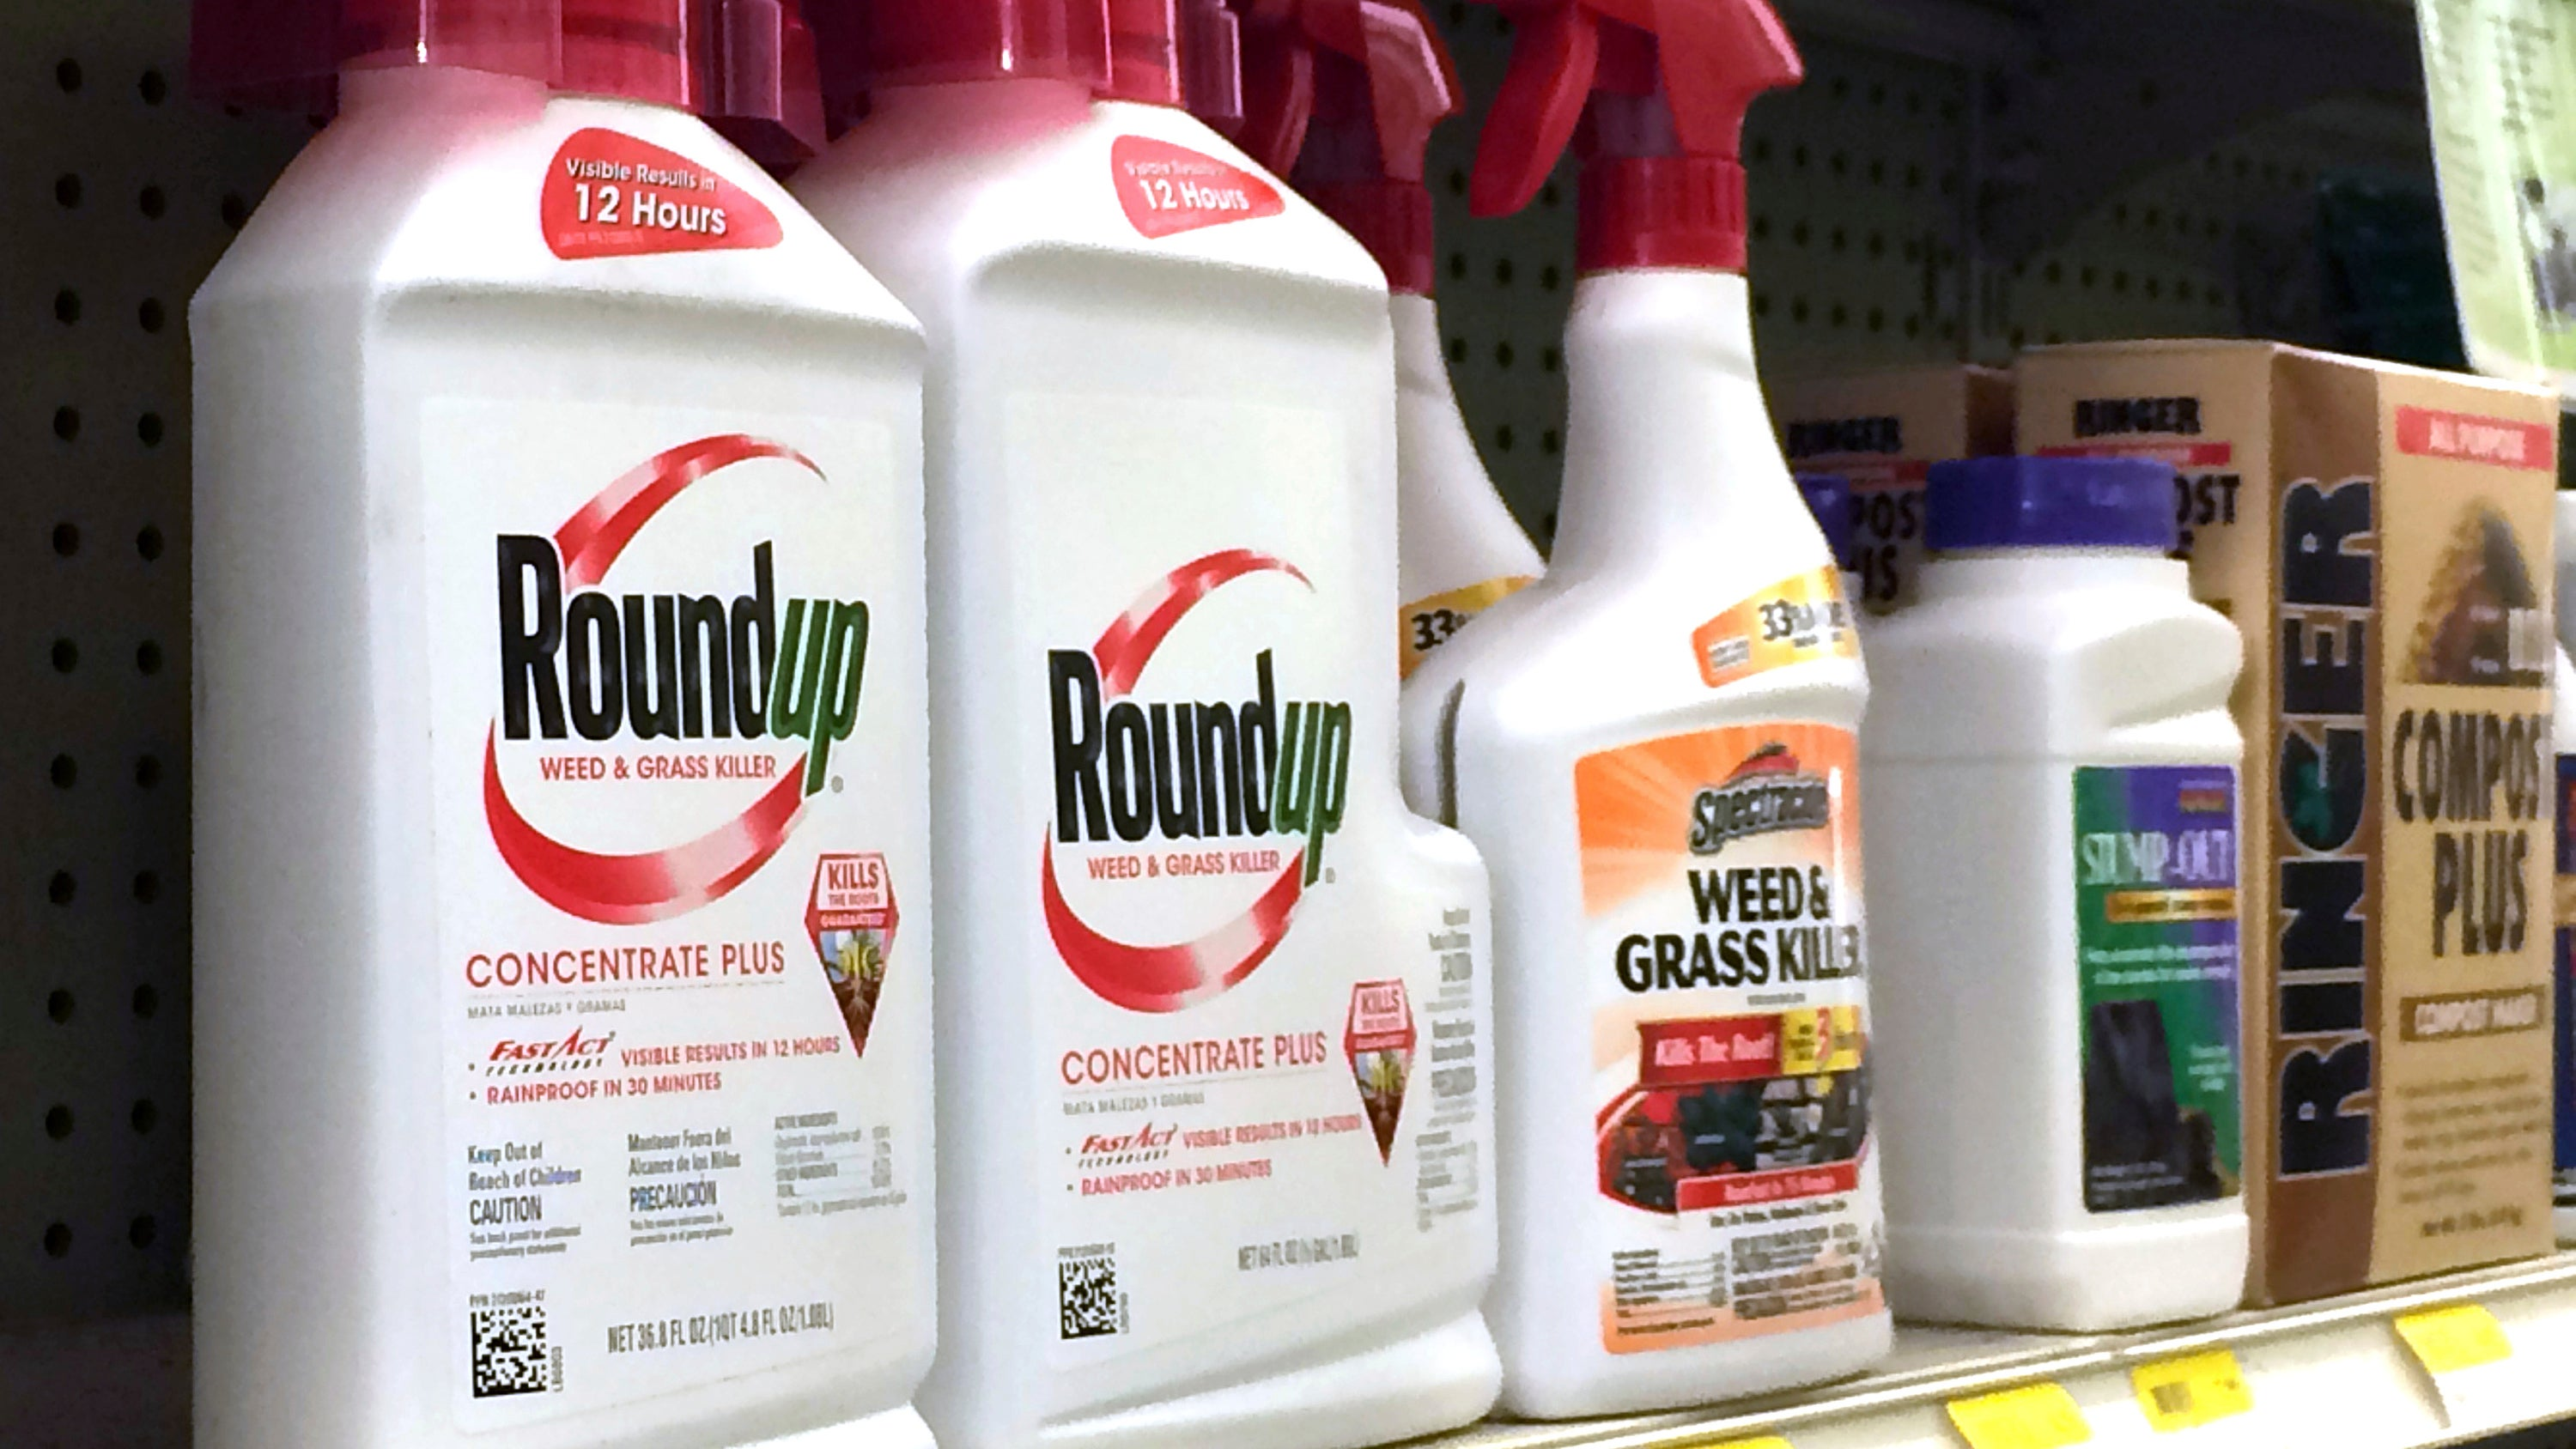 Report: Monsanto Edited 'Independent' Roundup Herbicide Safety Reviews